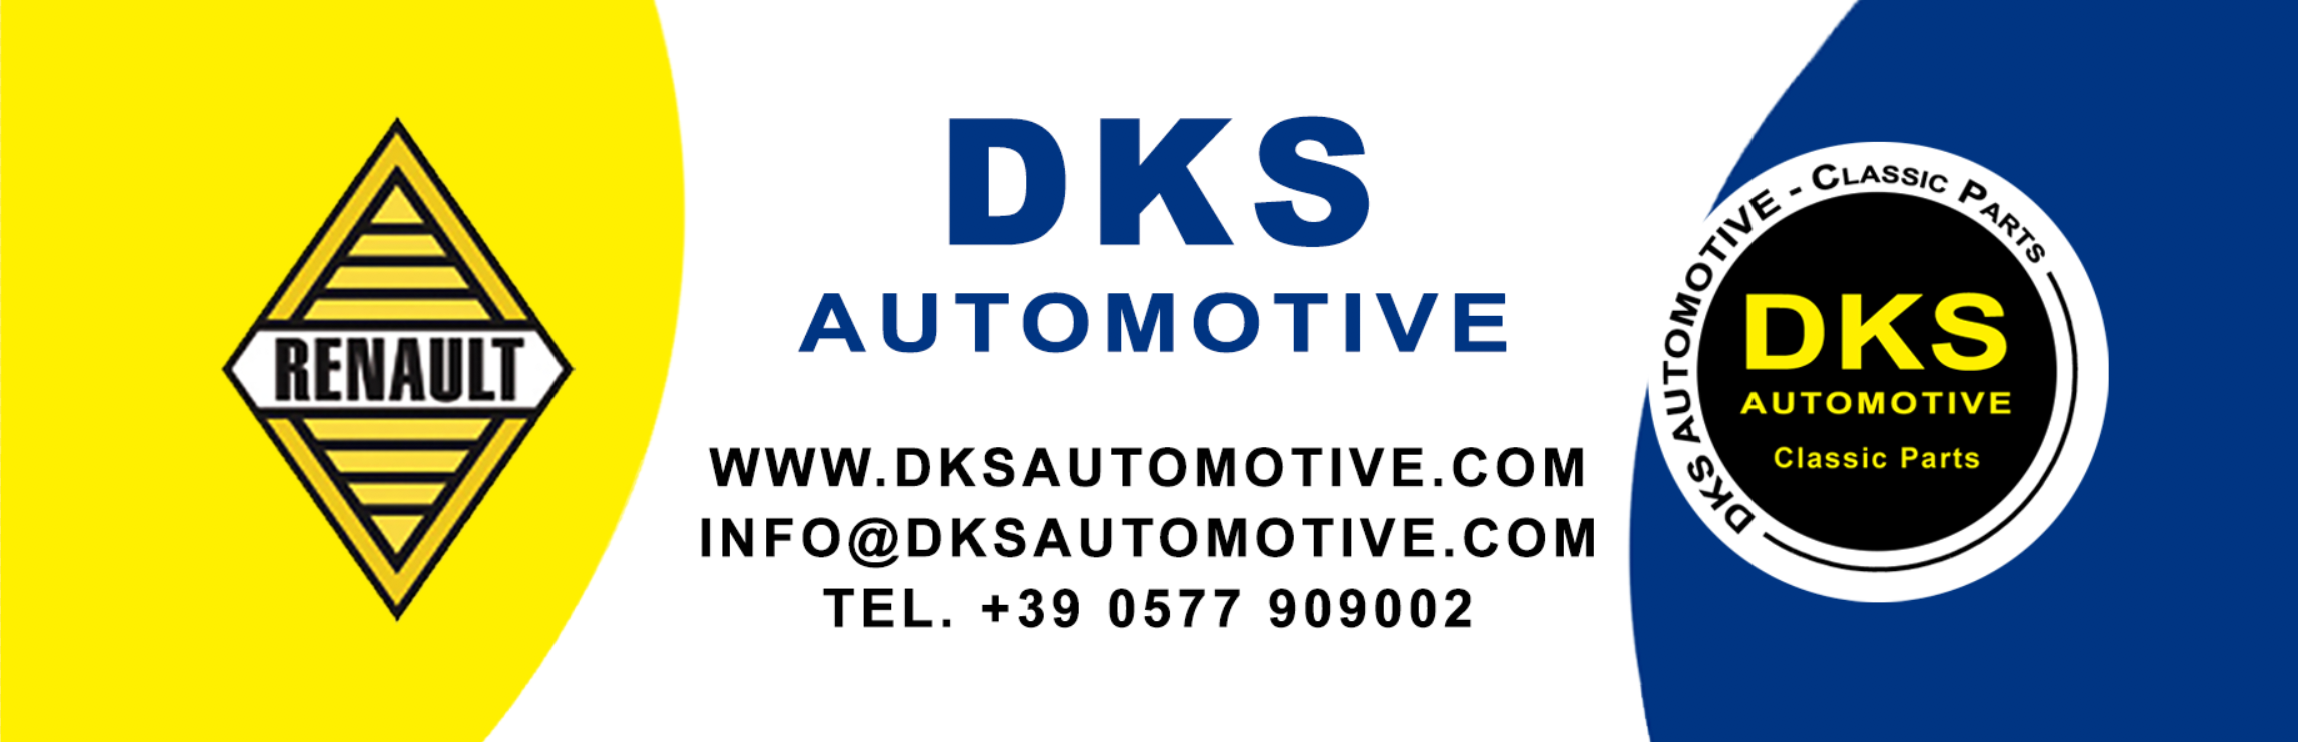 DKS Automotive Classic Parts Renault R4 Citroen 2CV